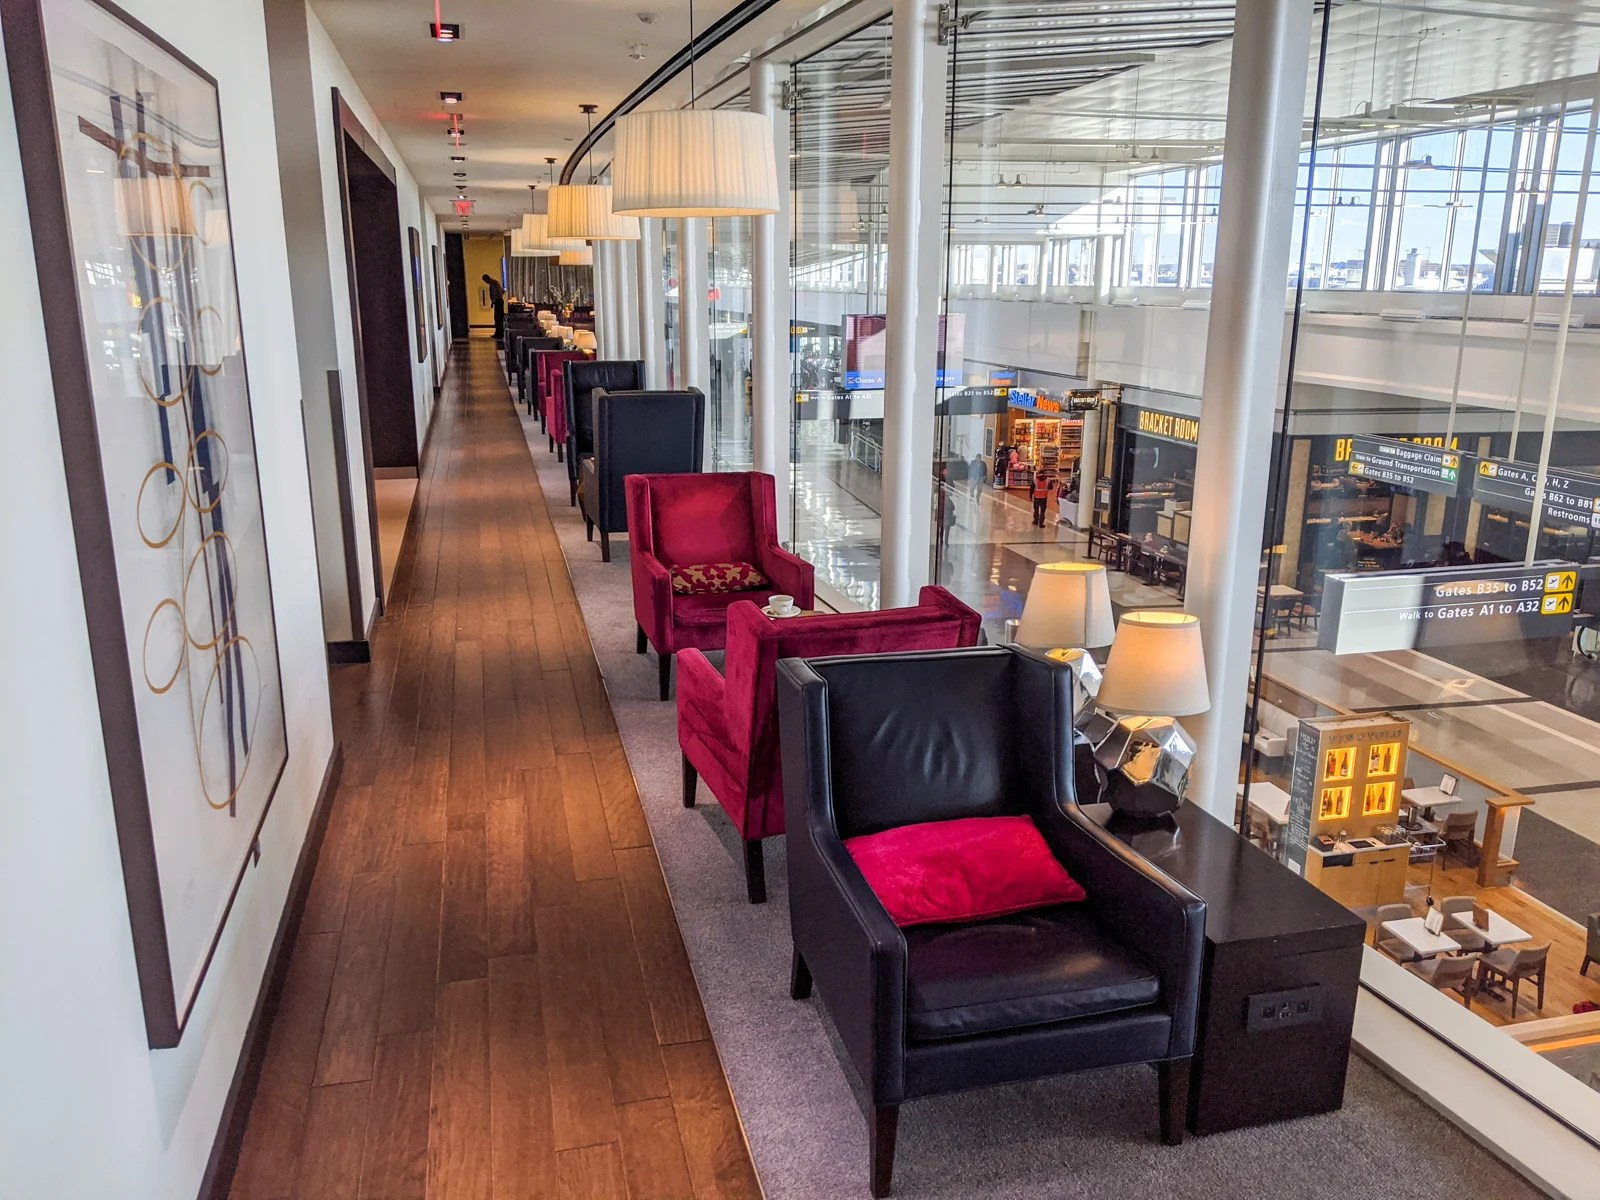 The British Airways Priority Pass lounge at closing.